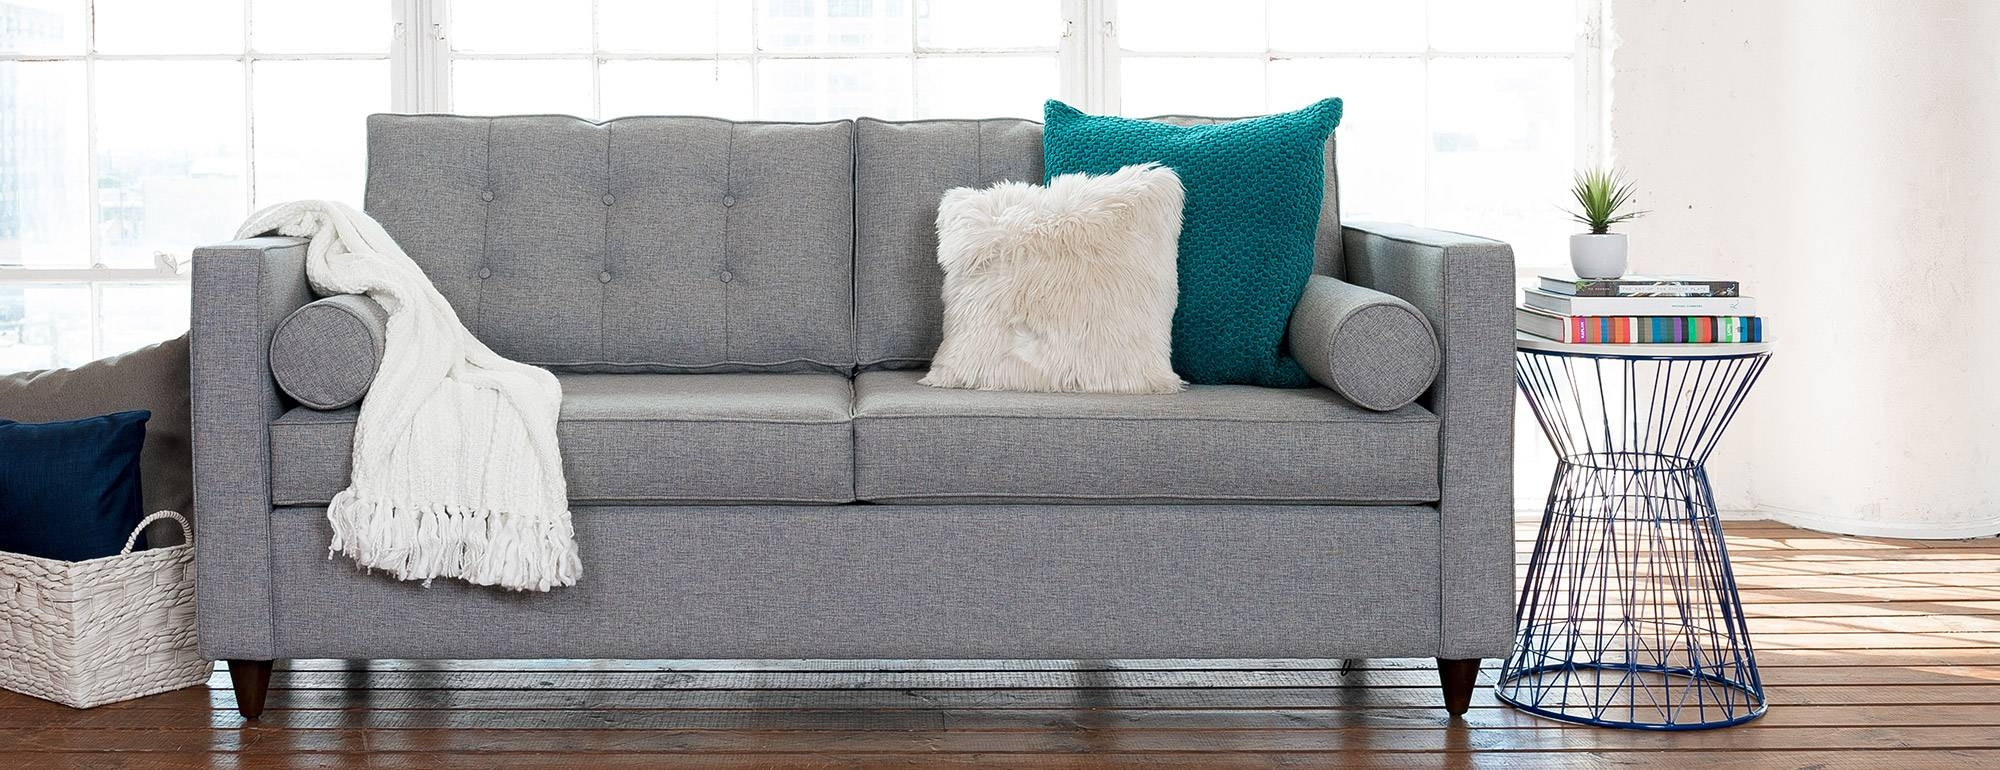 Braxton Sleeper Sofa | Joybird intended for Braxton Sofa (Image 15 of 30)